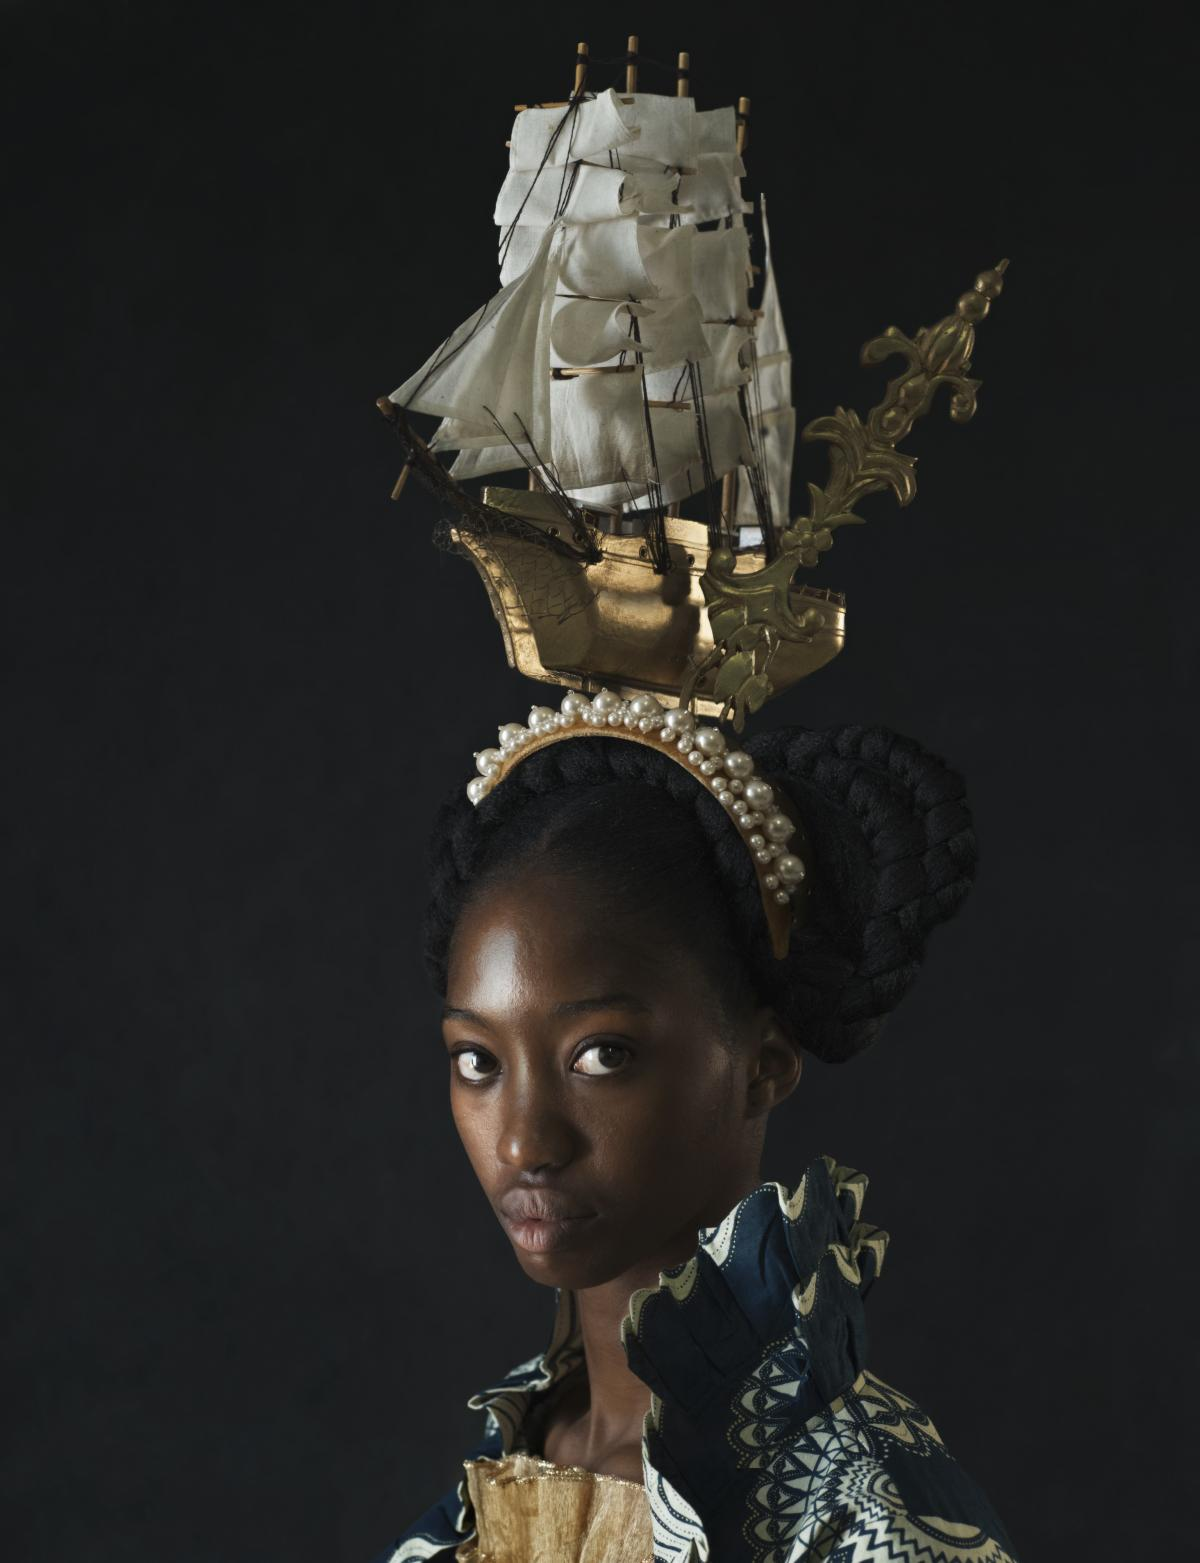 """Vessel. This headdress was inspired by the children's book """"The Lady With A Ship on Her Head,"""" says Kudita. The ship, she says, is a reminder of the transport of slaves but also can provide passage to a future free of oppression."""